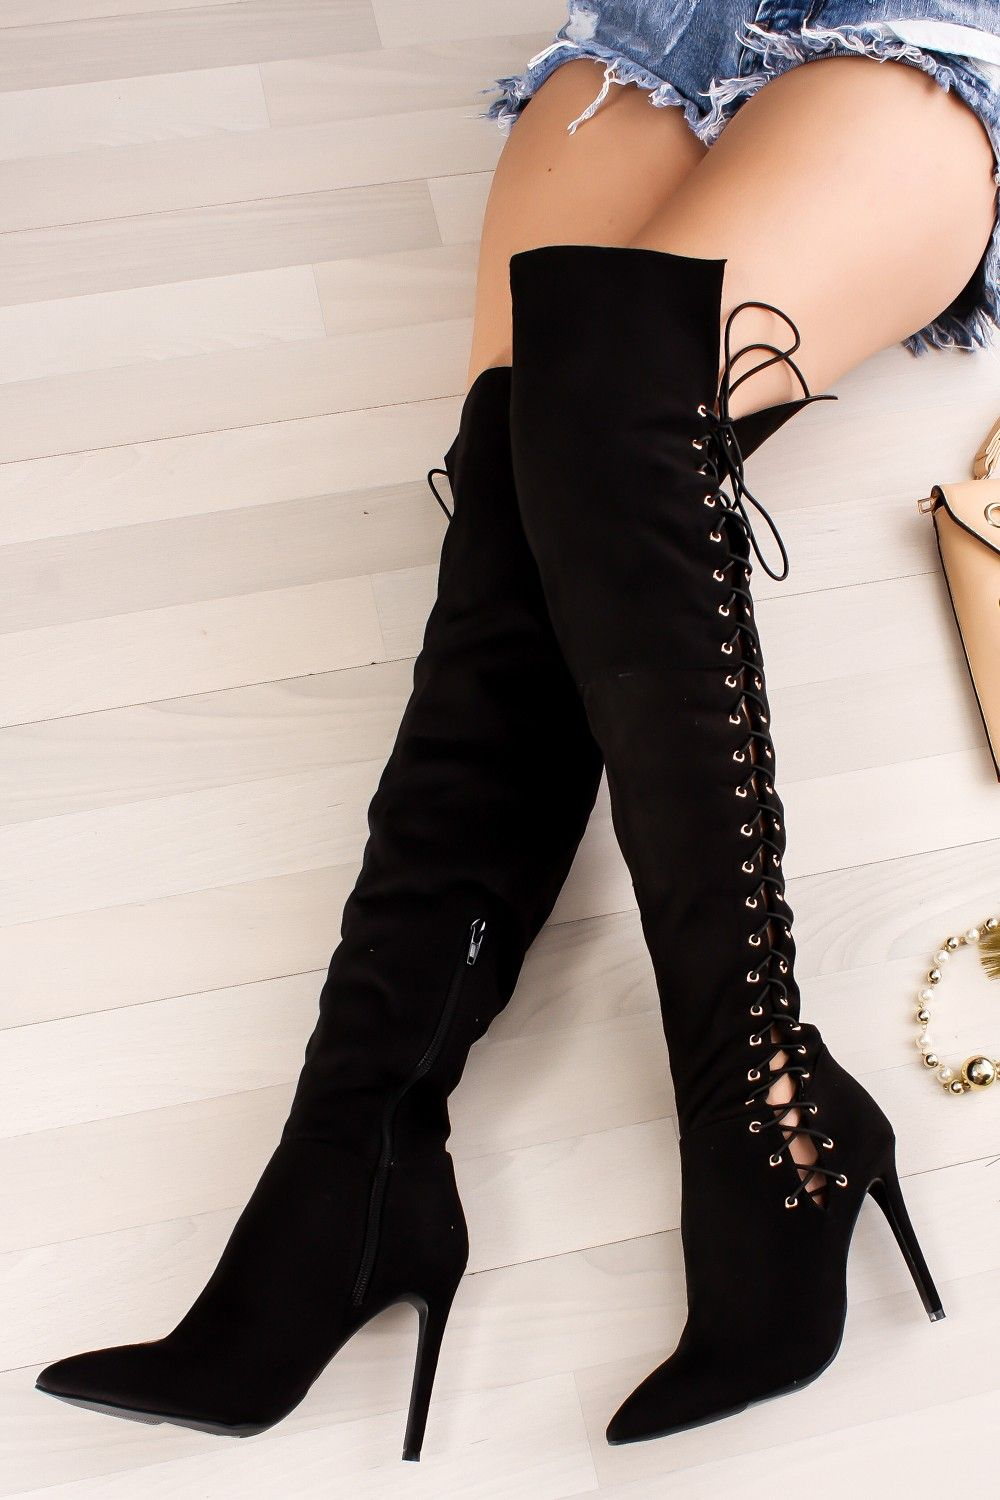 98e8a20fea8 This faux suede over the knee boots features a 4 inch high heel ...